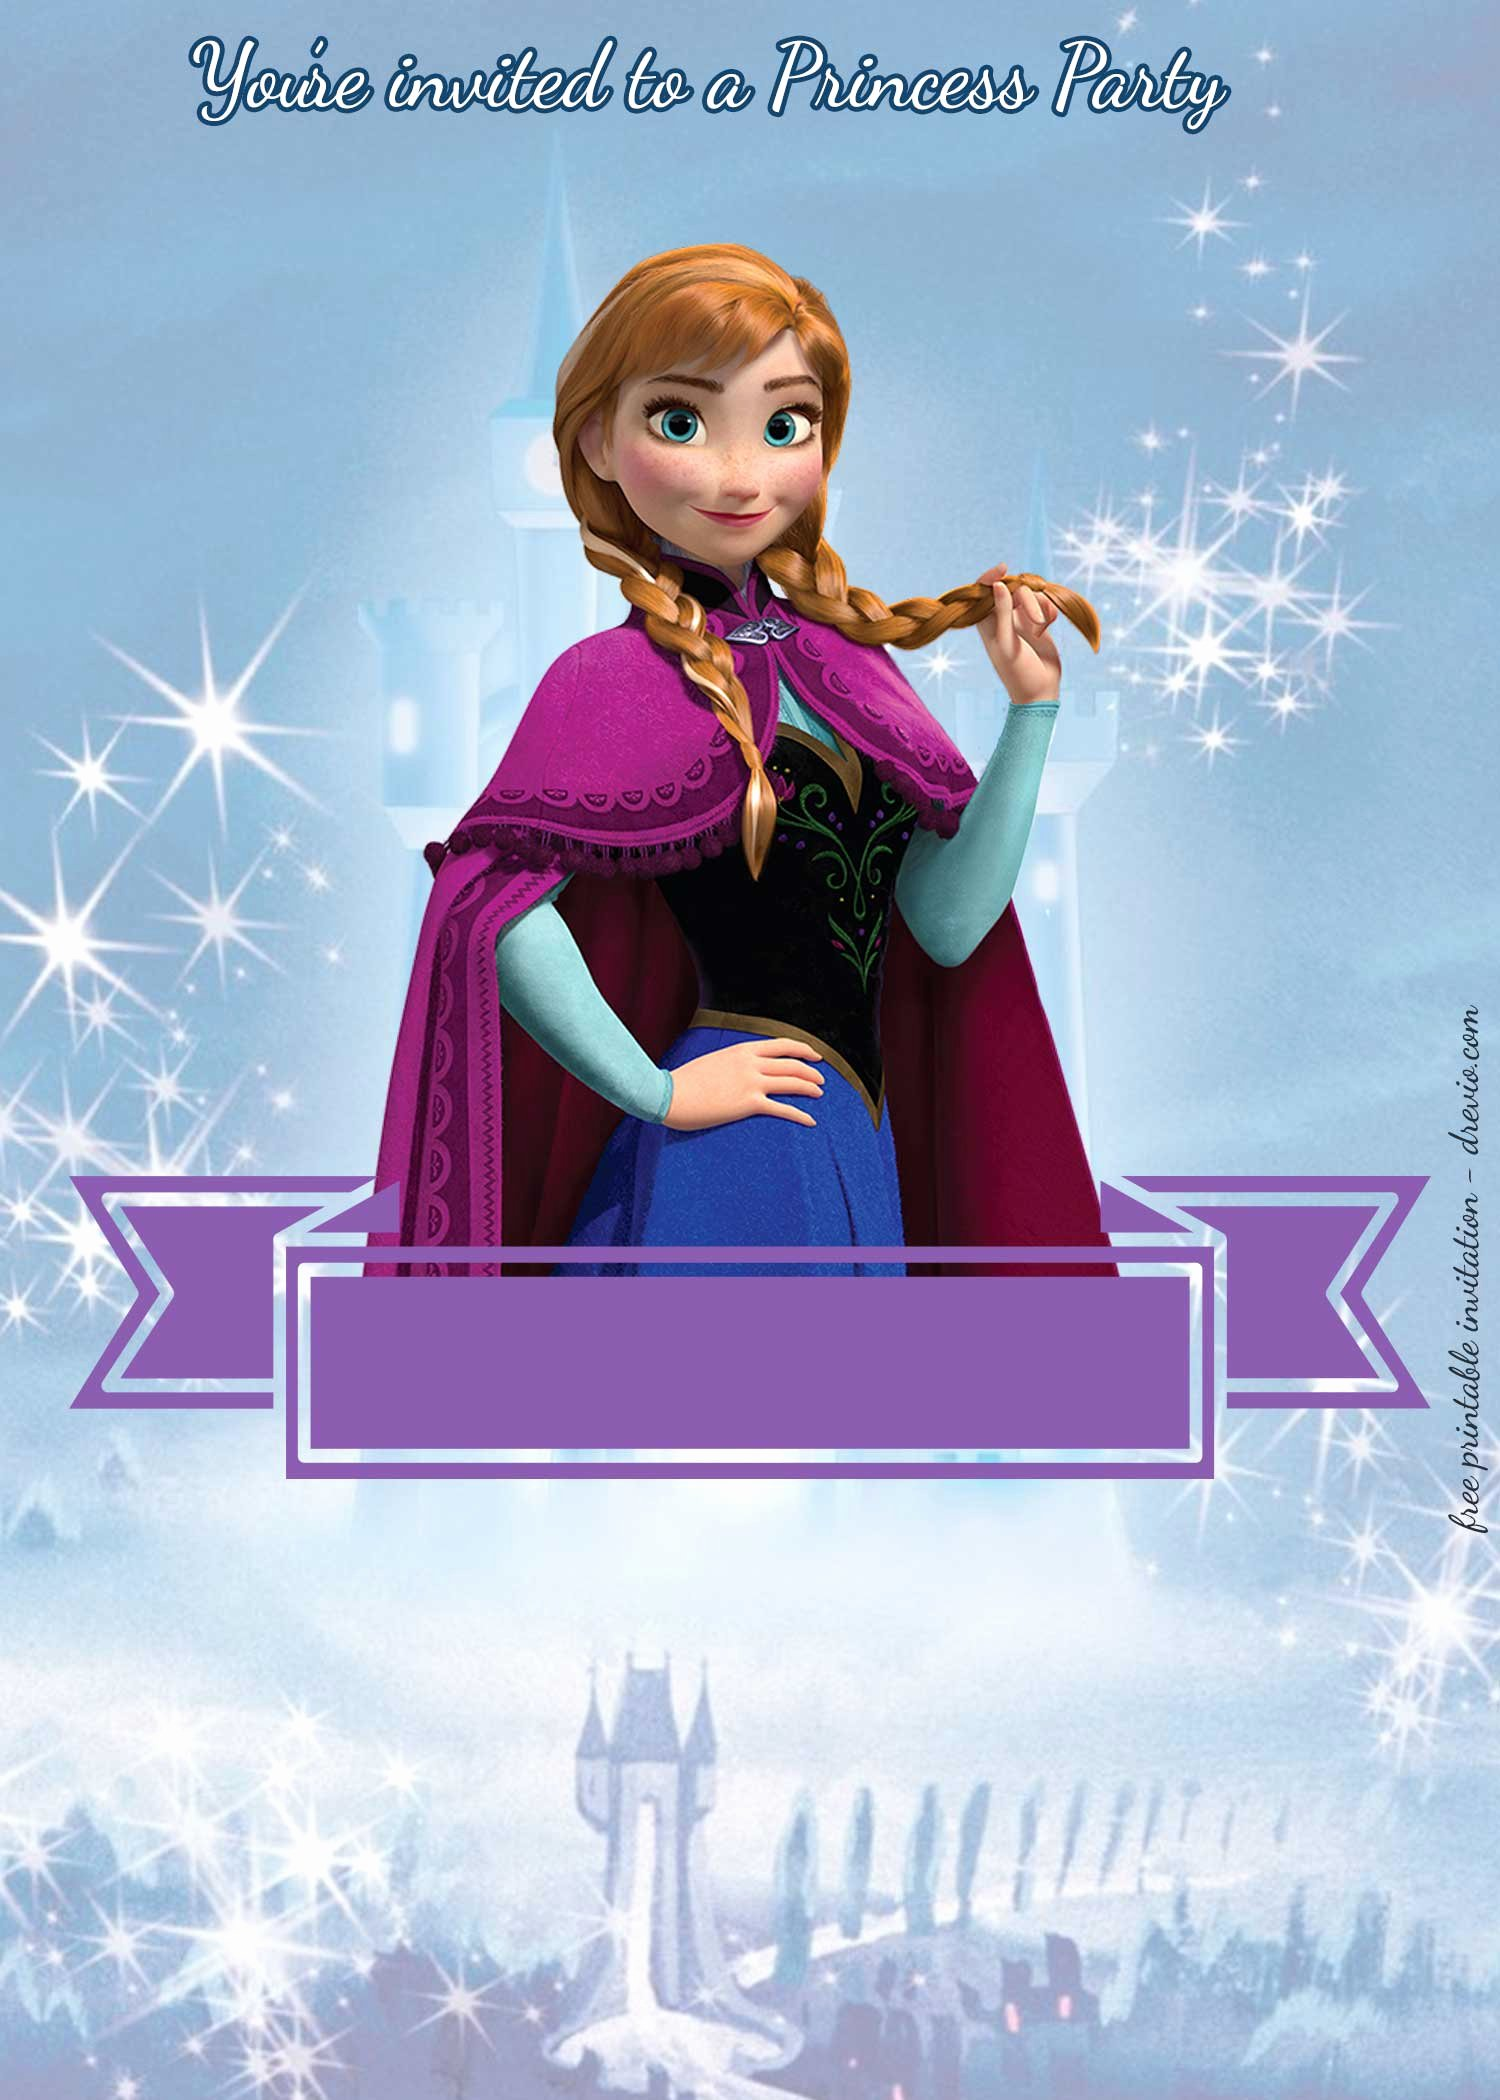 Free Frozen Invitations Templates Lovely Free Princess Party Invitation—princess Anna Frozen